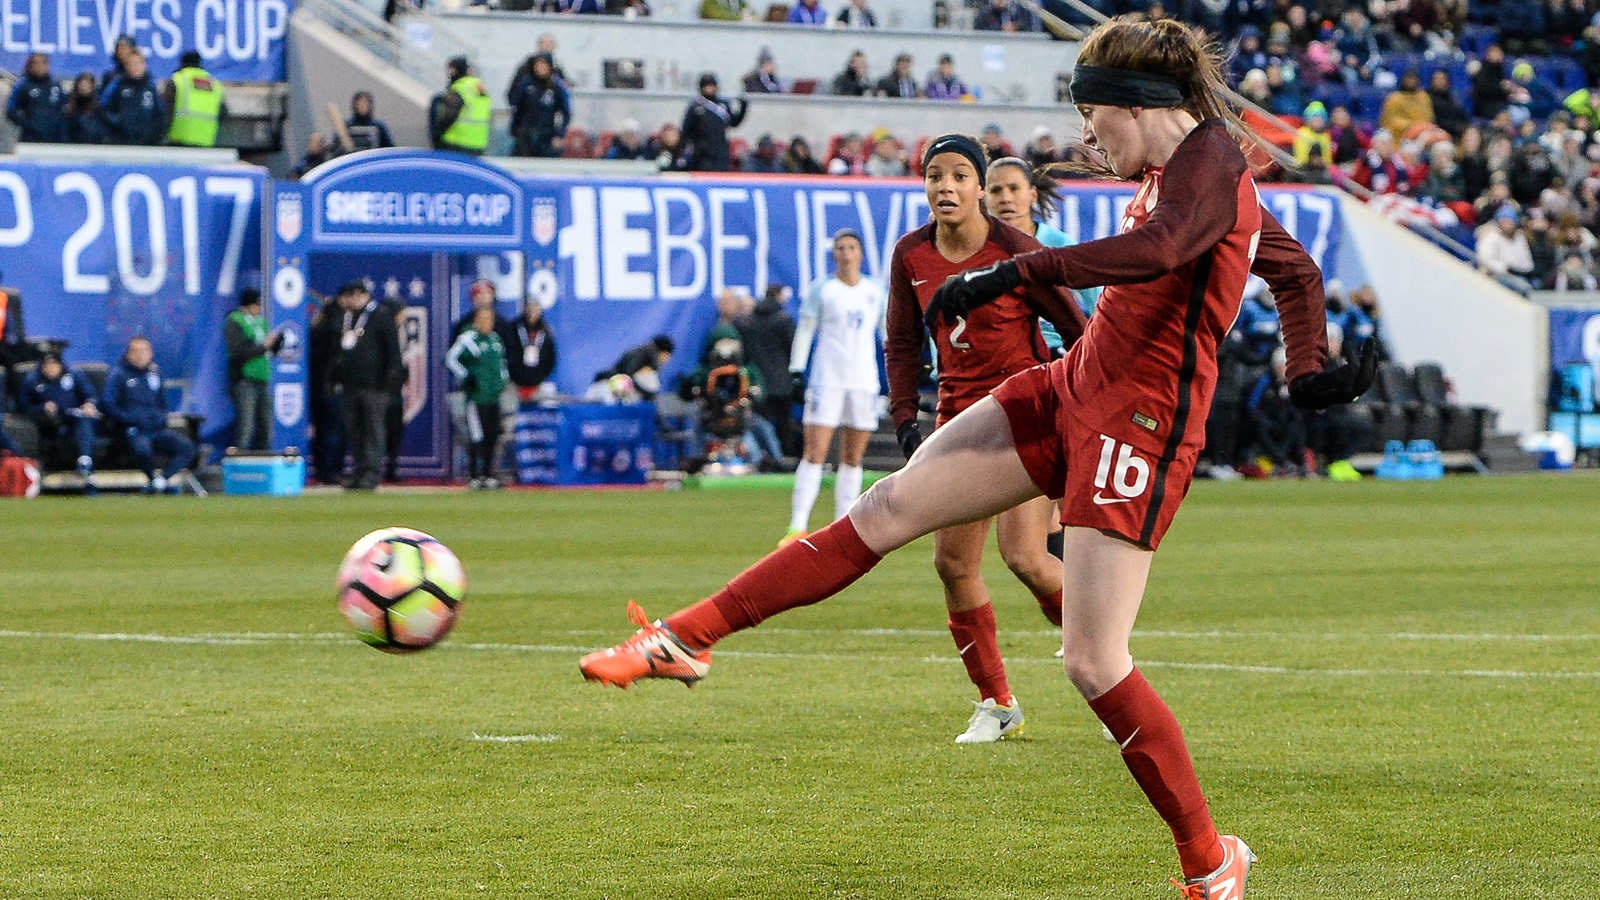 HARRISON, NJ - MARCH 04: USA midfielder Rose Lavelle (16) takes a shot against England during the first half at the She Believes Cup on March 04, 2017, at Red Bull Arena in Harrison, NJ. (Photo by Dennis Schneidler/Icon Sportswire via Getty Images)